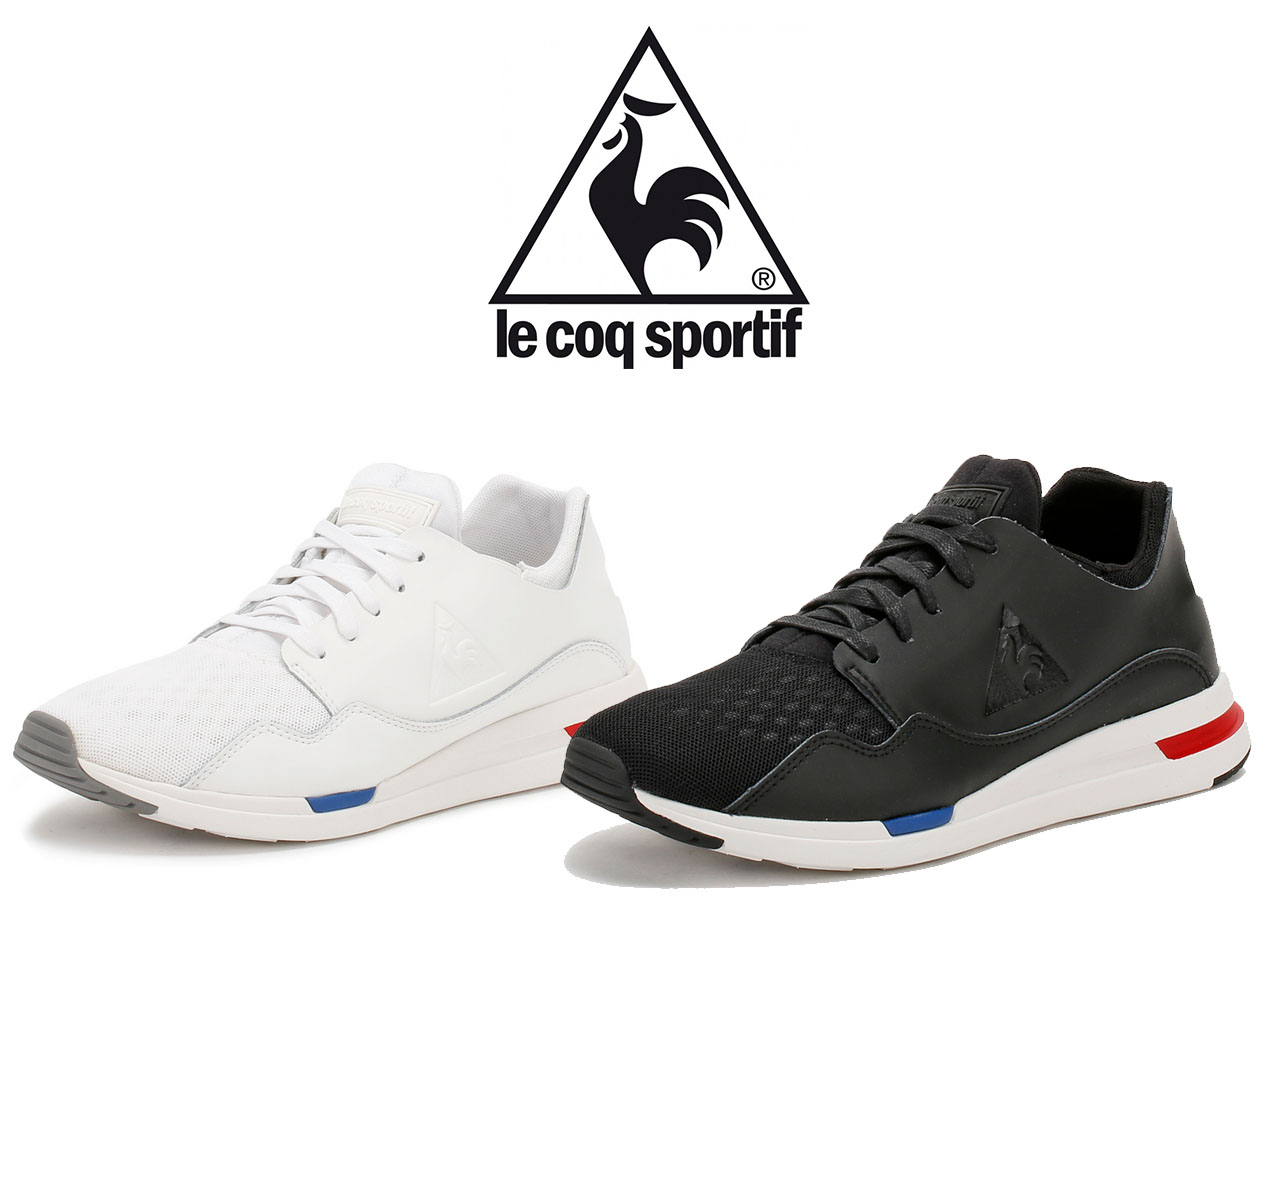 LCS R PURE LEATHER/MESH - FOOTWEAR - Low-tops & sneakers Le Coq Sportif xIZOfsa1